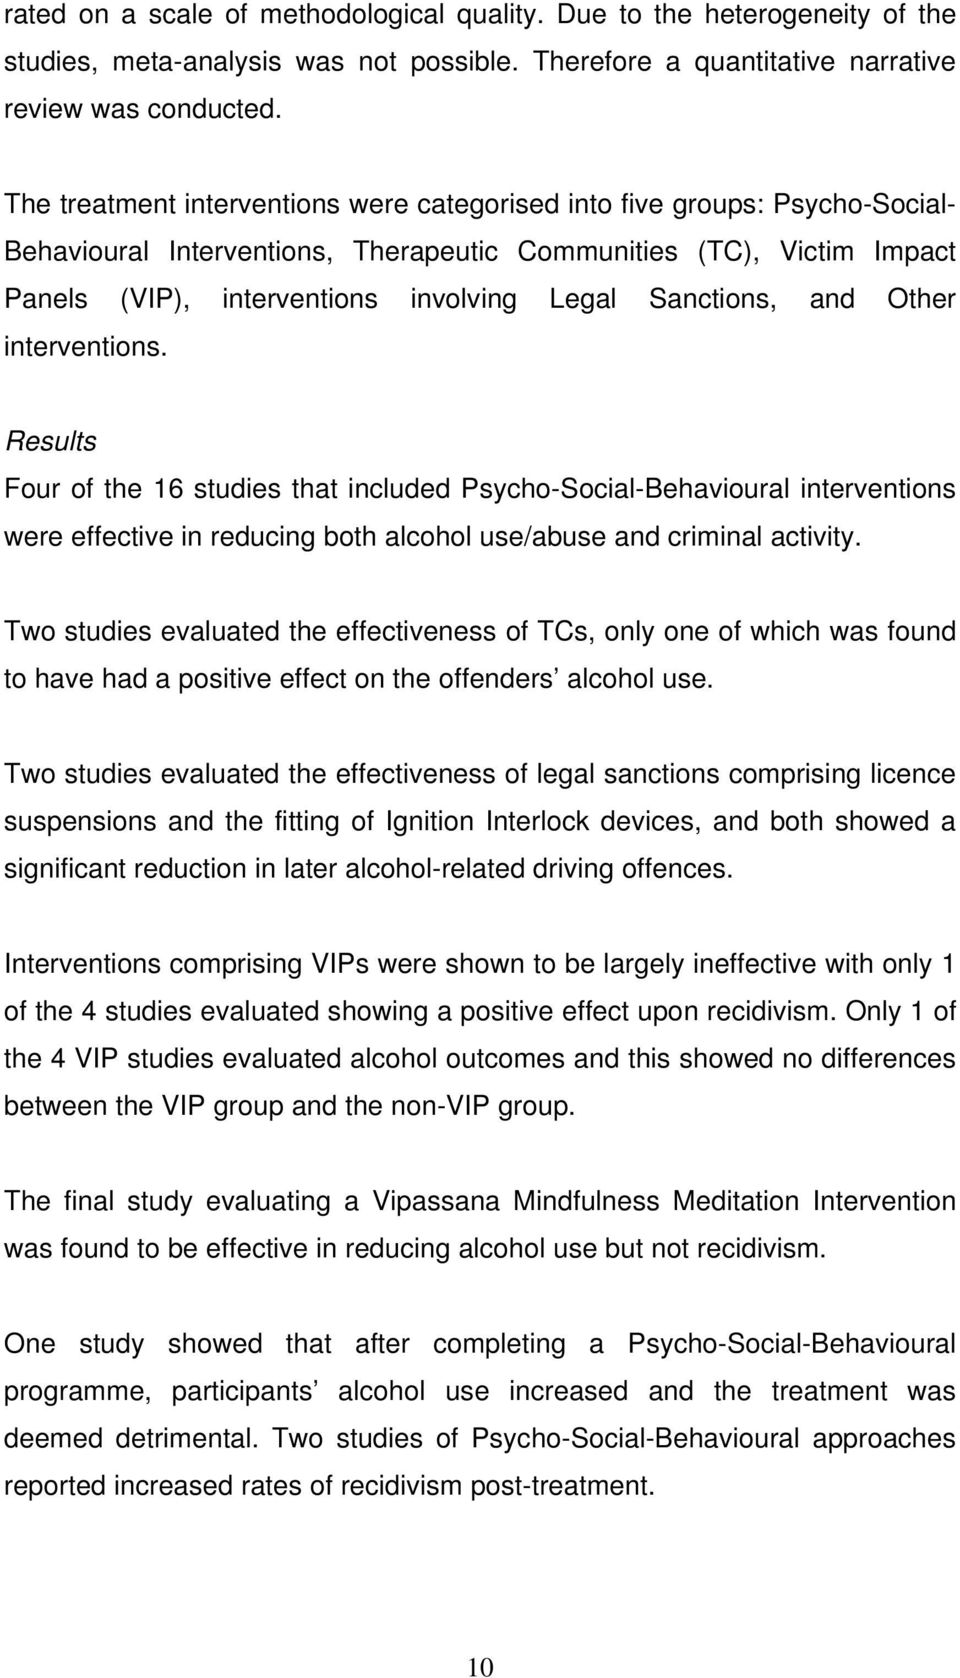 Sanctions, and Other interventions. Results Four of the 16 studies that included Psycho-Social-Behavioural interventions were effective in reducing both alcohol use/abuse and criminal activity.